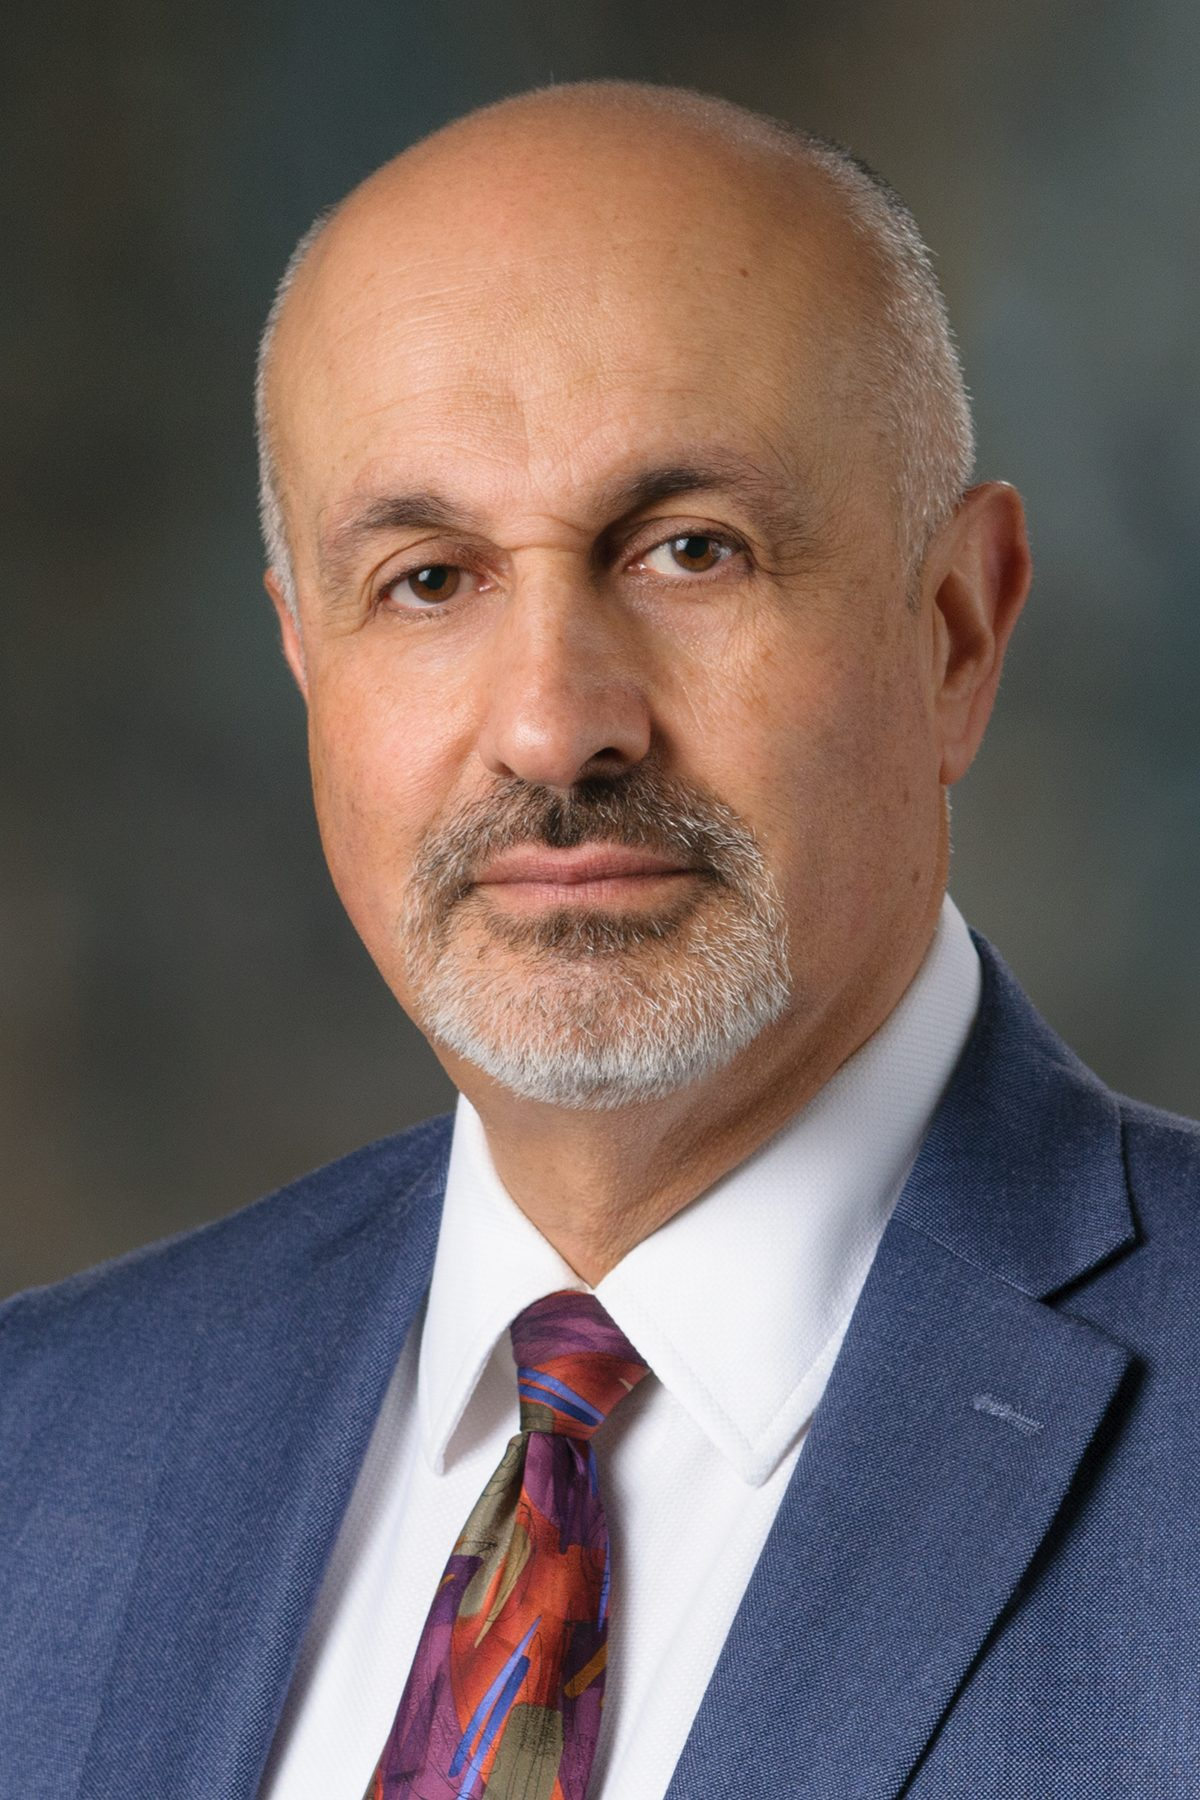 Mohammad R. Salehpour Image